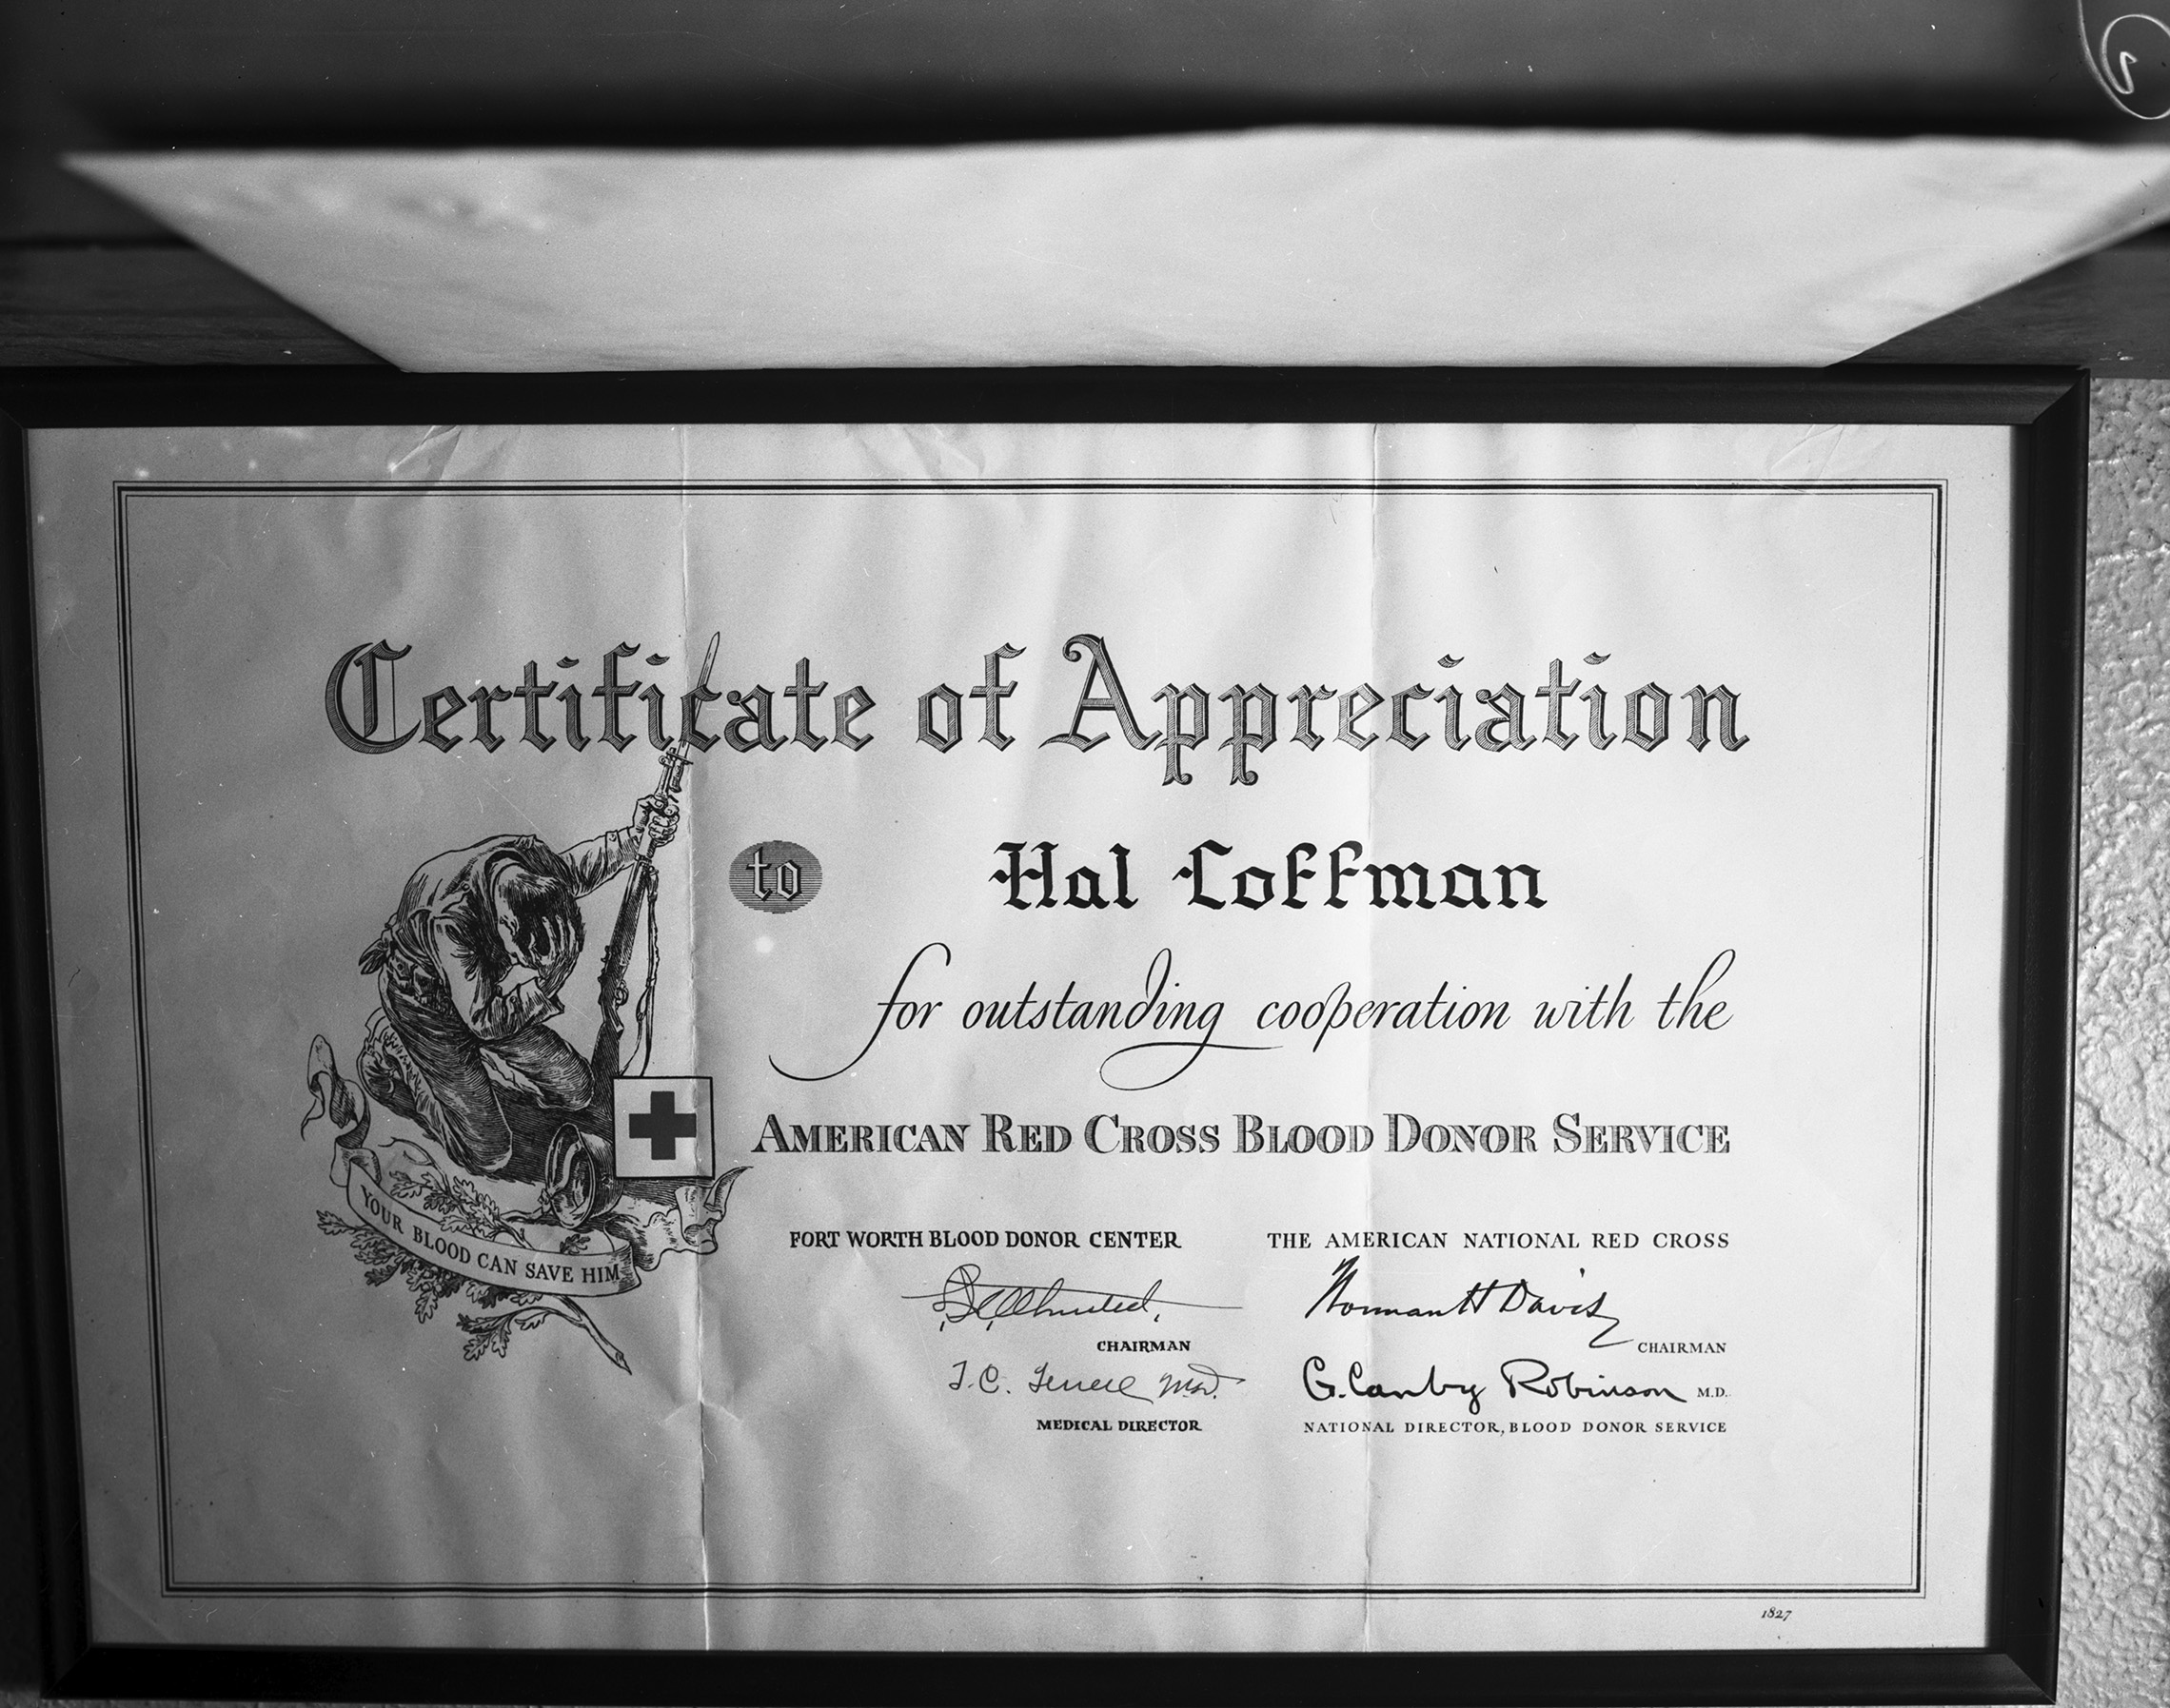 Red Cross Blood Donor Certificate Presented To Hal Coffman Digital